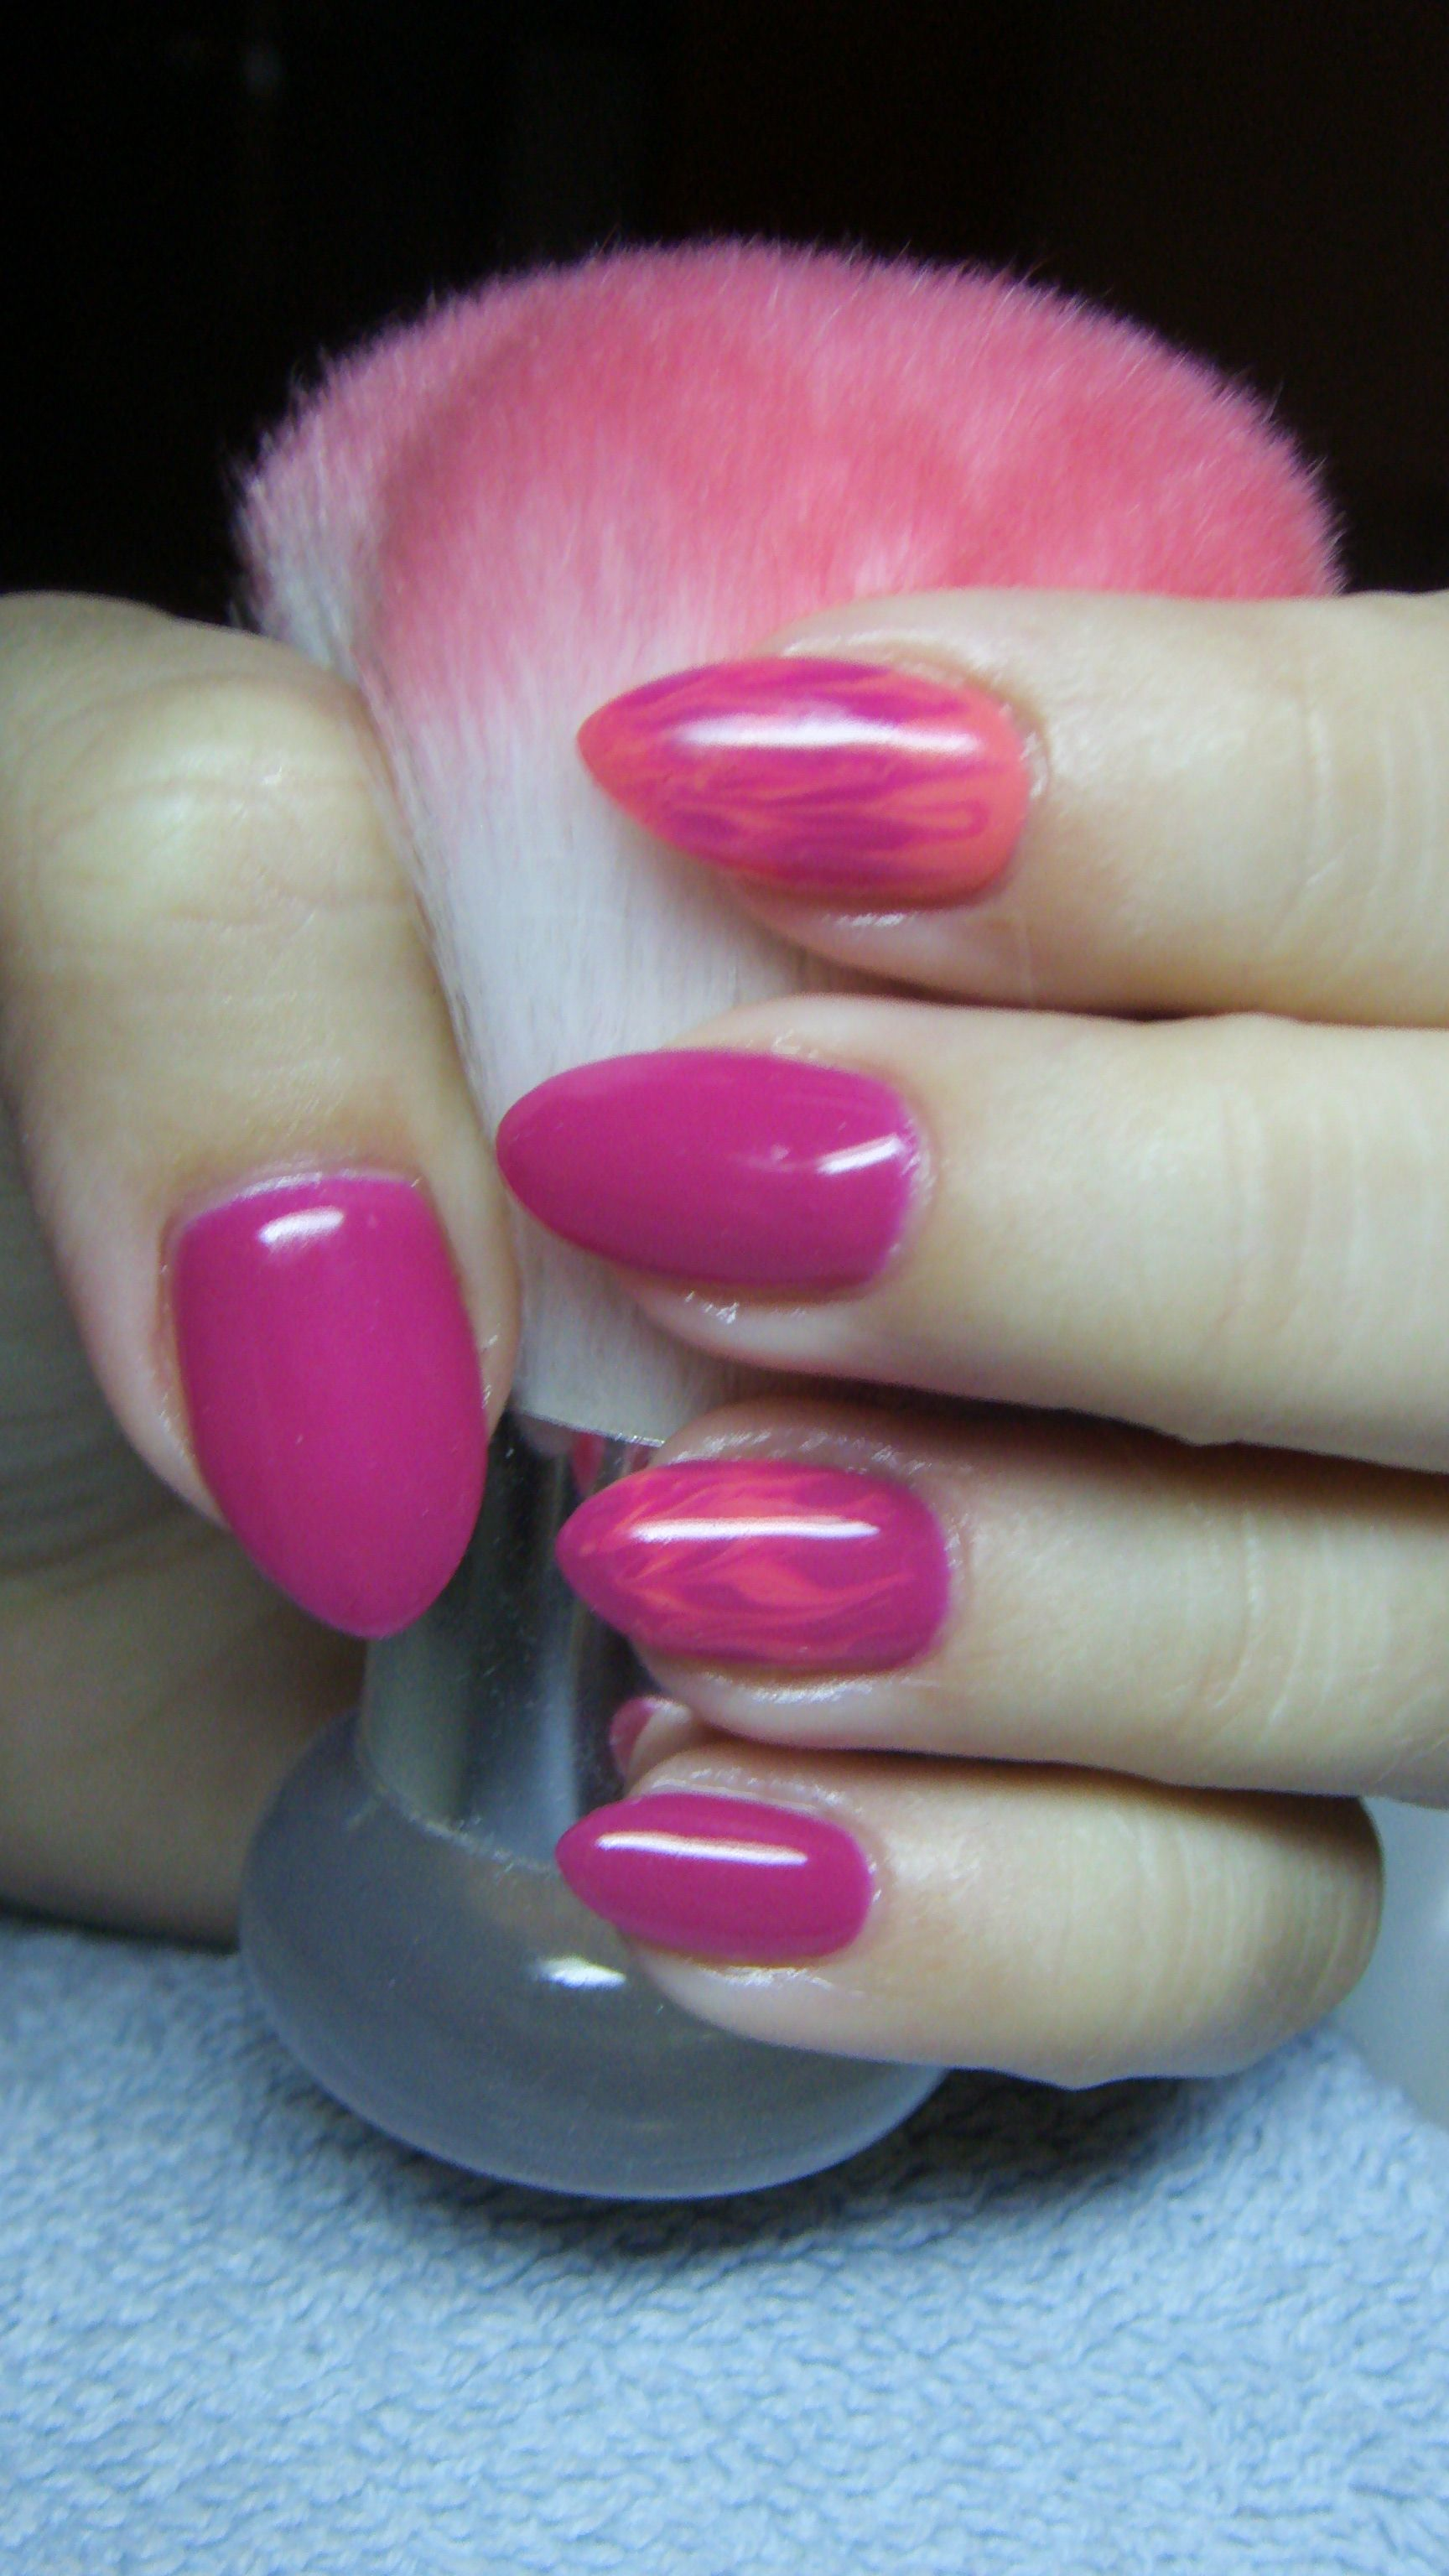 Dark pink nails | nails | Pinterest | Dark pink nails and Pink nails